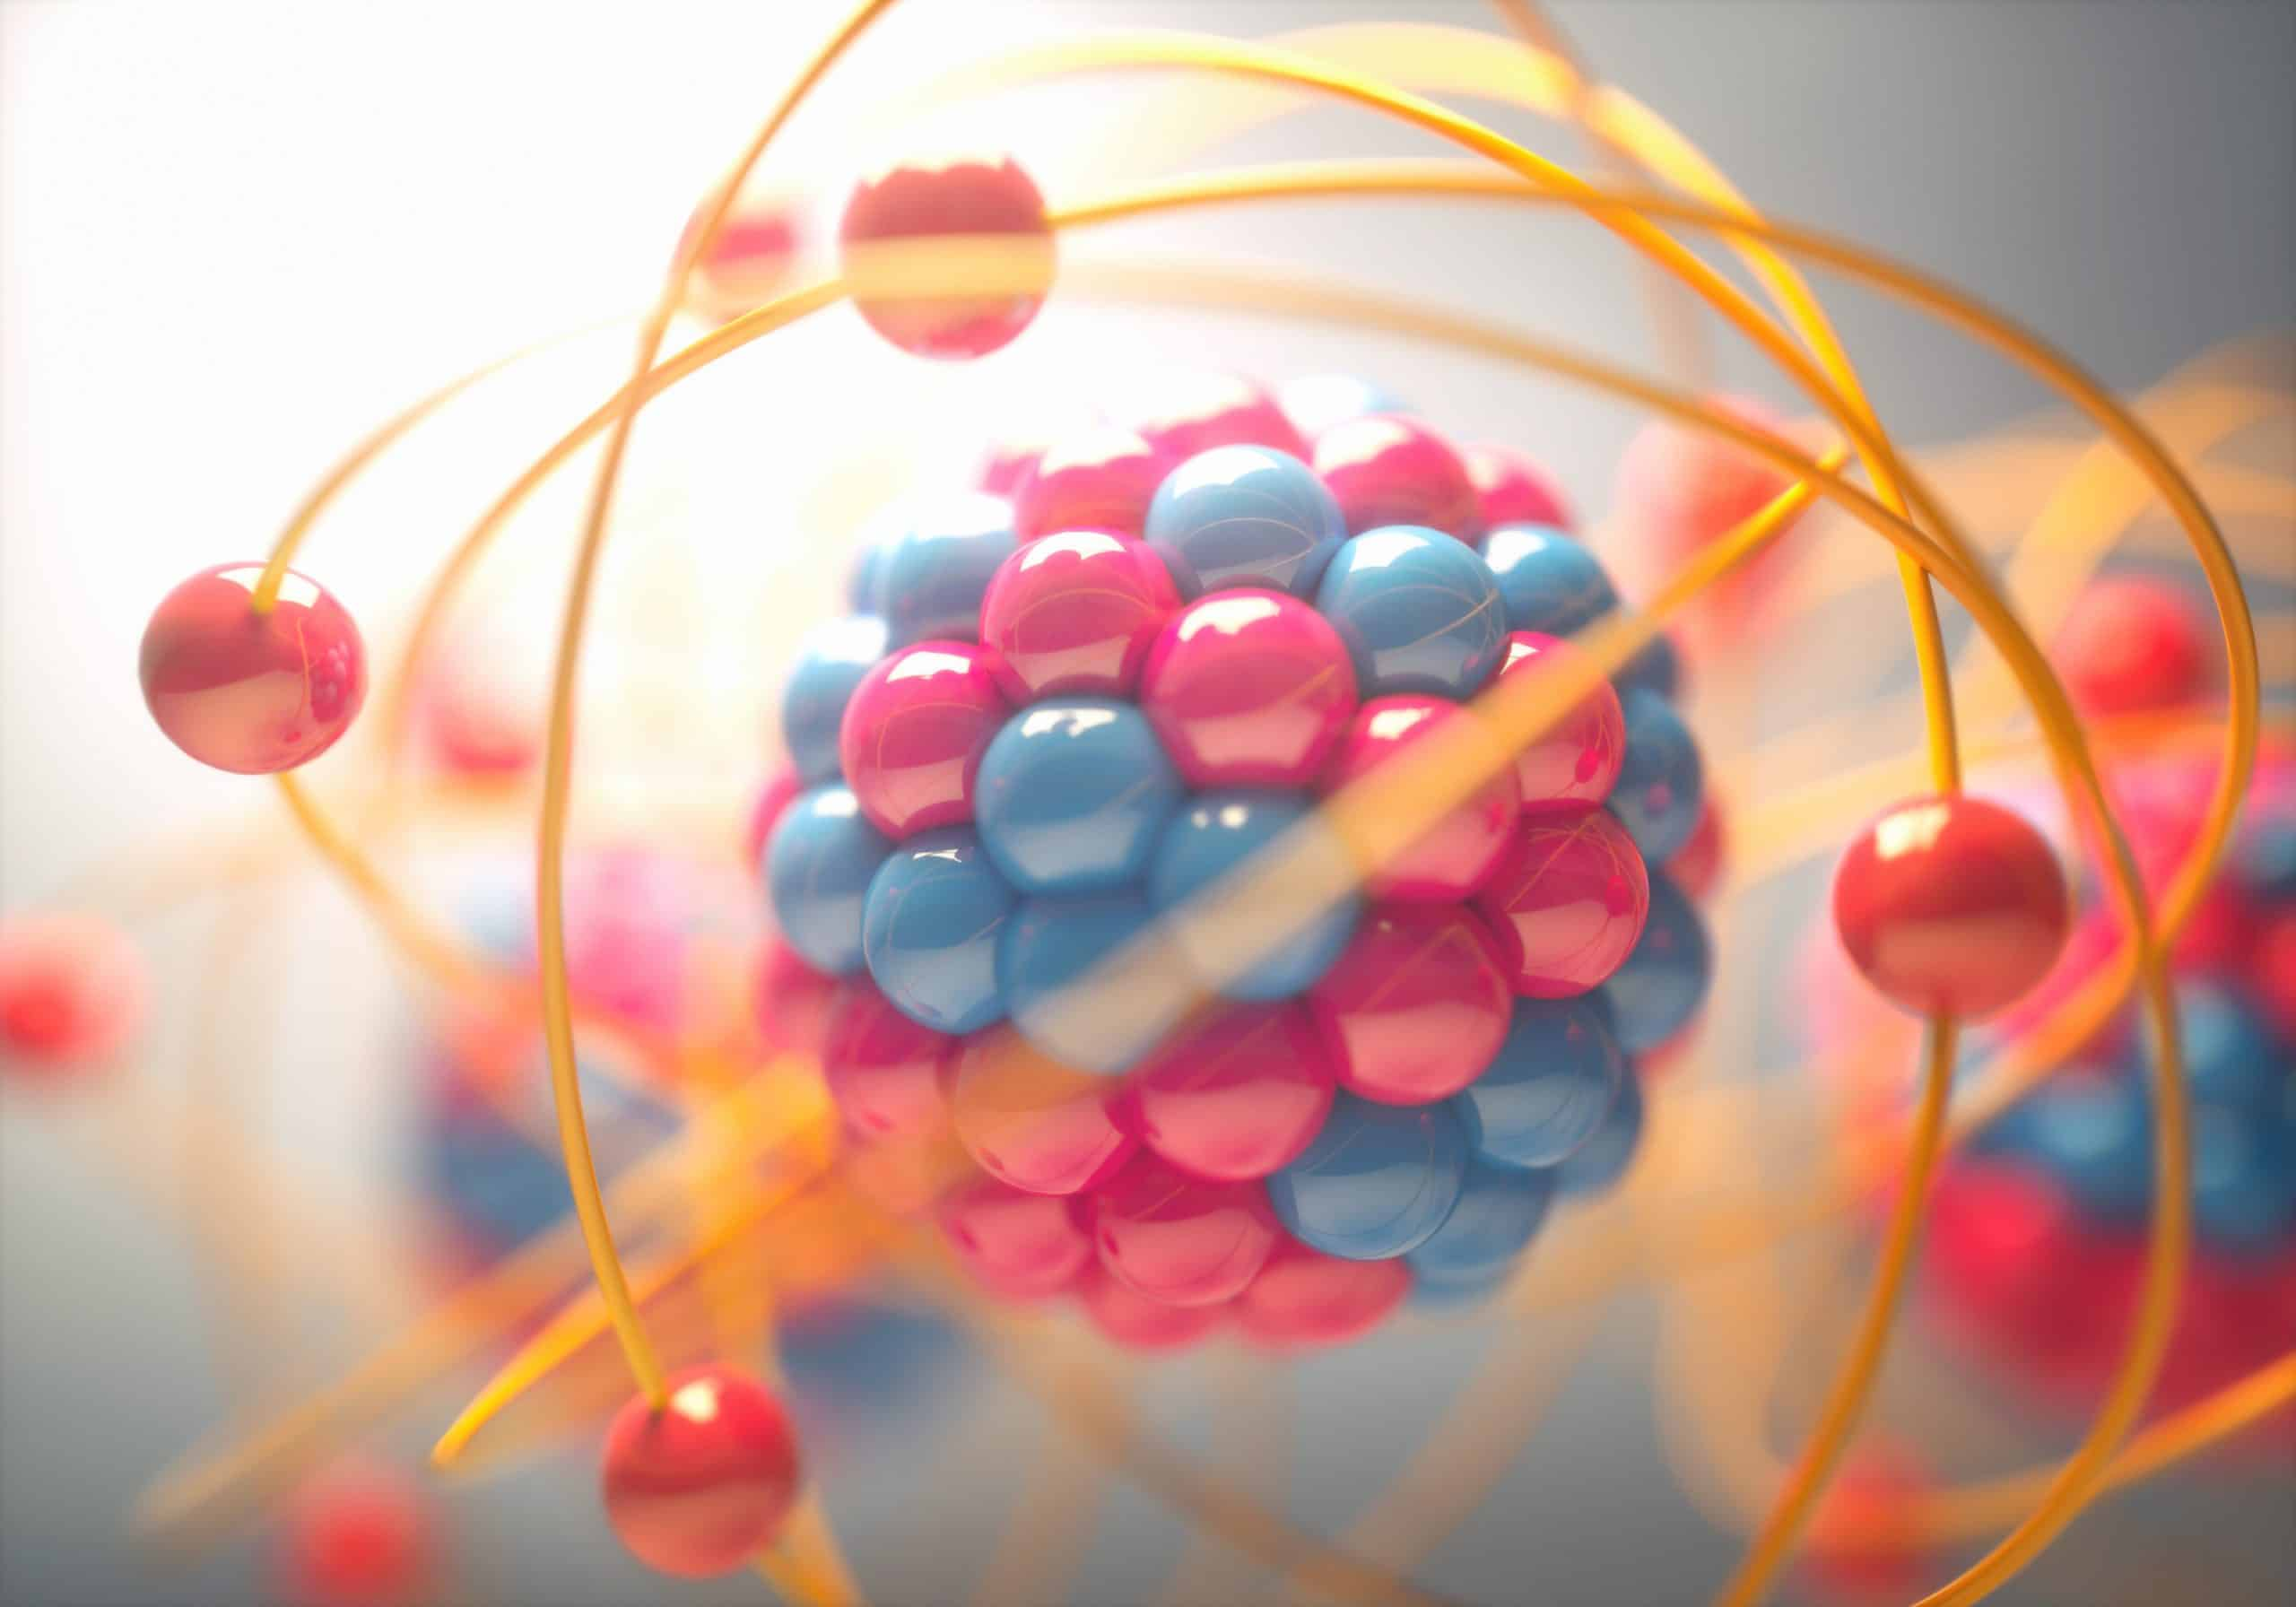 3D Illustration of an atom, which contains chemical energy